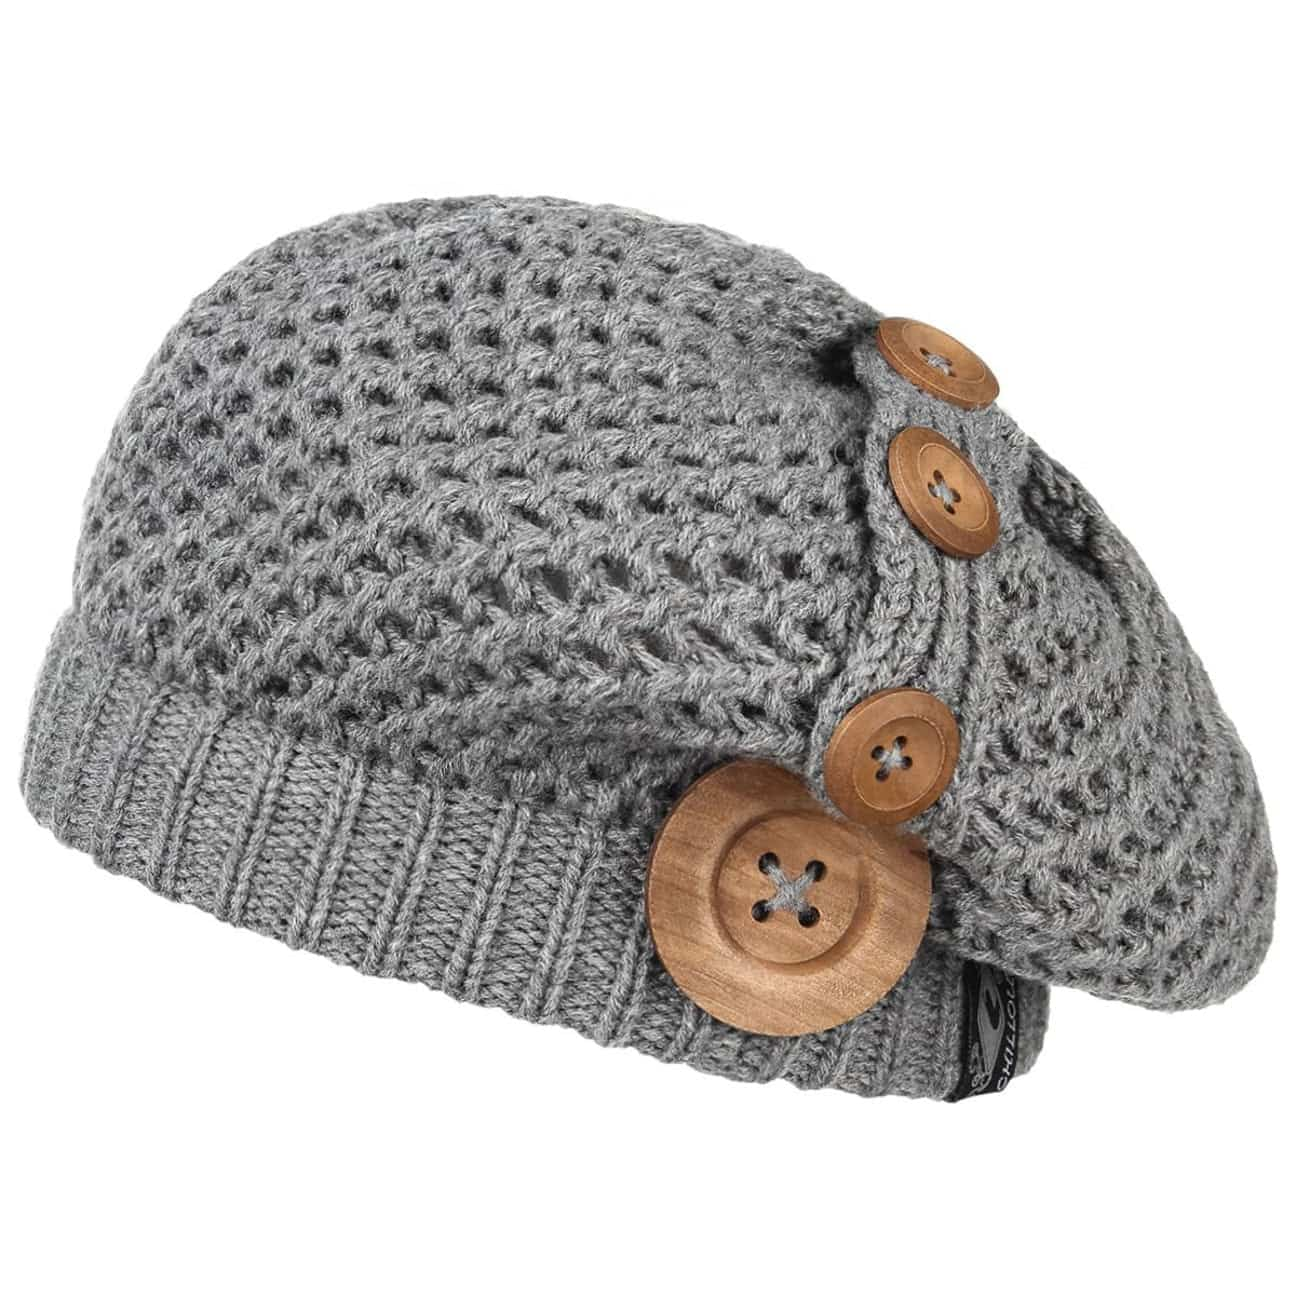 ... Nelly Knit Beret by Chillouts - grey 1 ... 38c440f9658